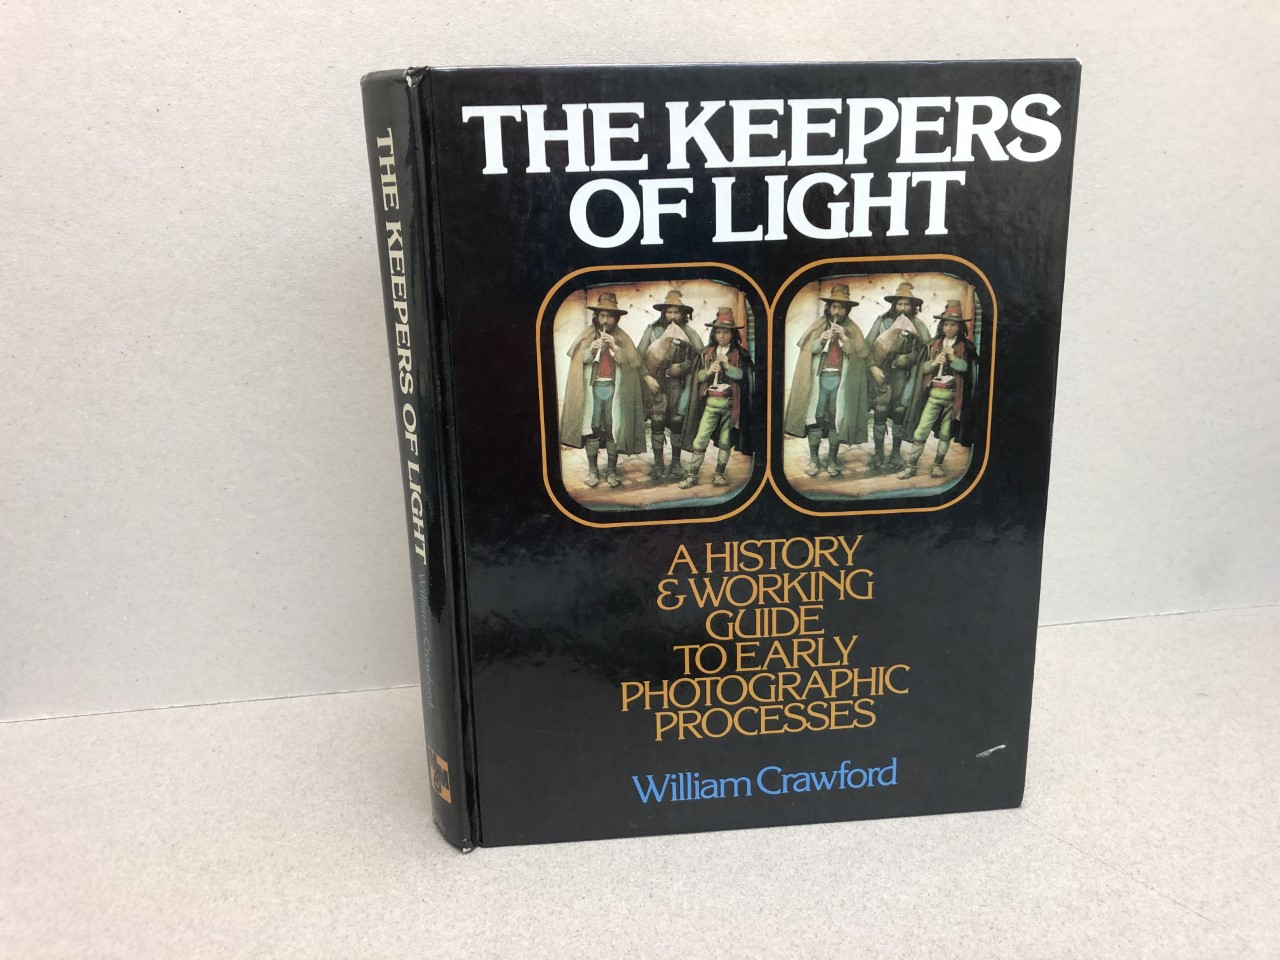 Image for The Keepers of Light: A History and Working Guide to Early Photographic Processes